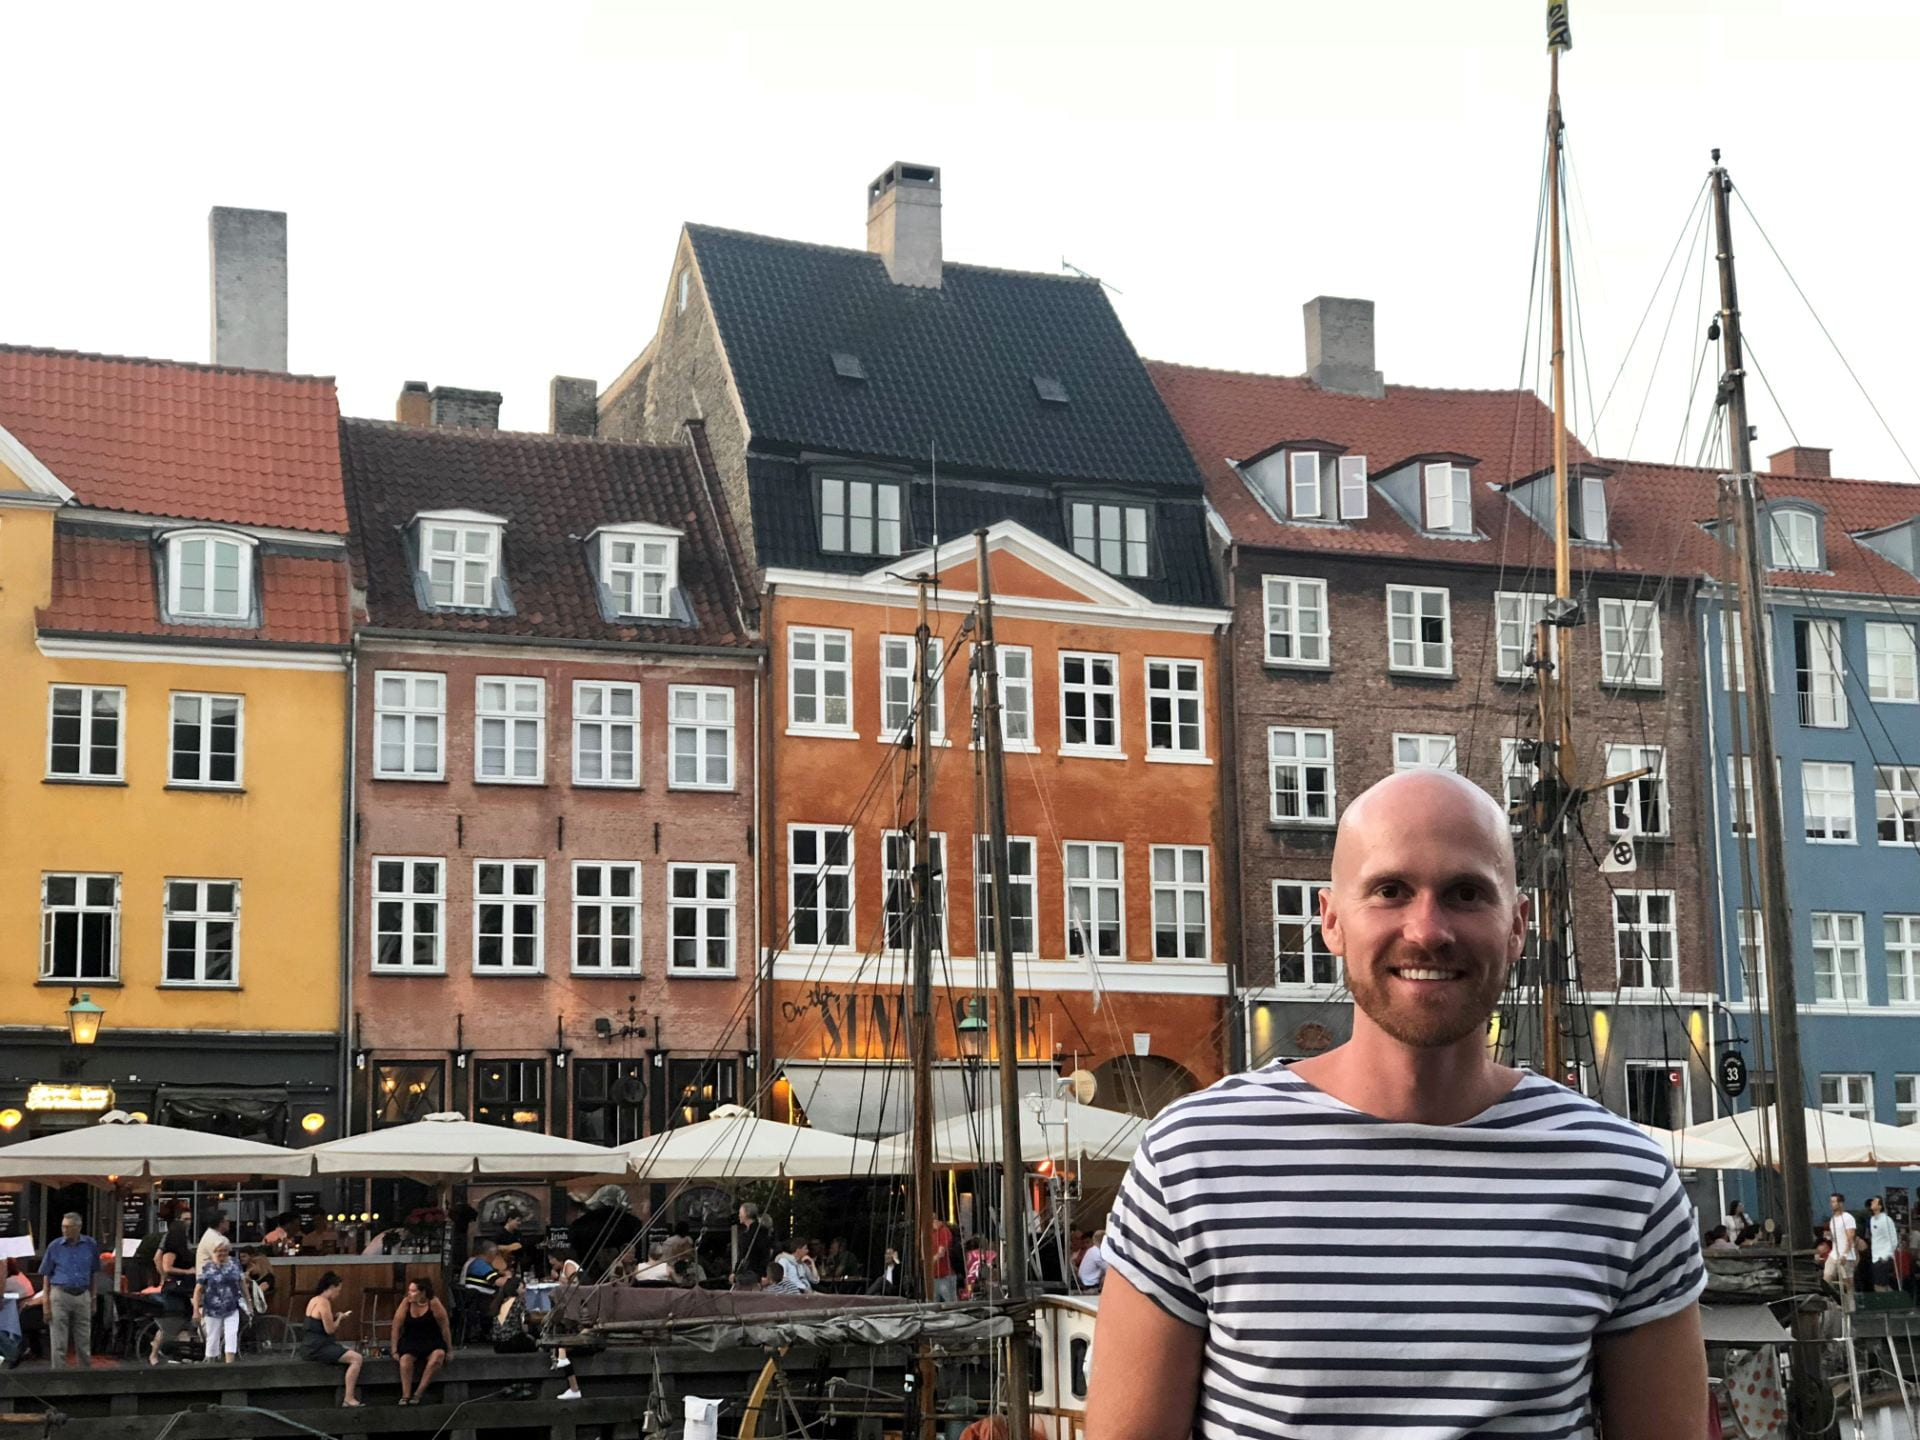 Jason Sprinkle stands in front of colorful houses in Denmark